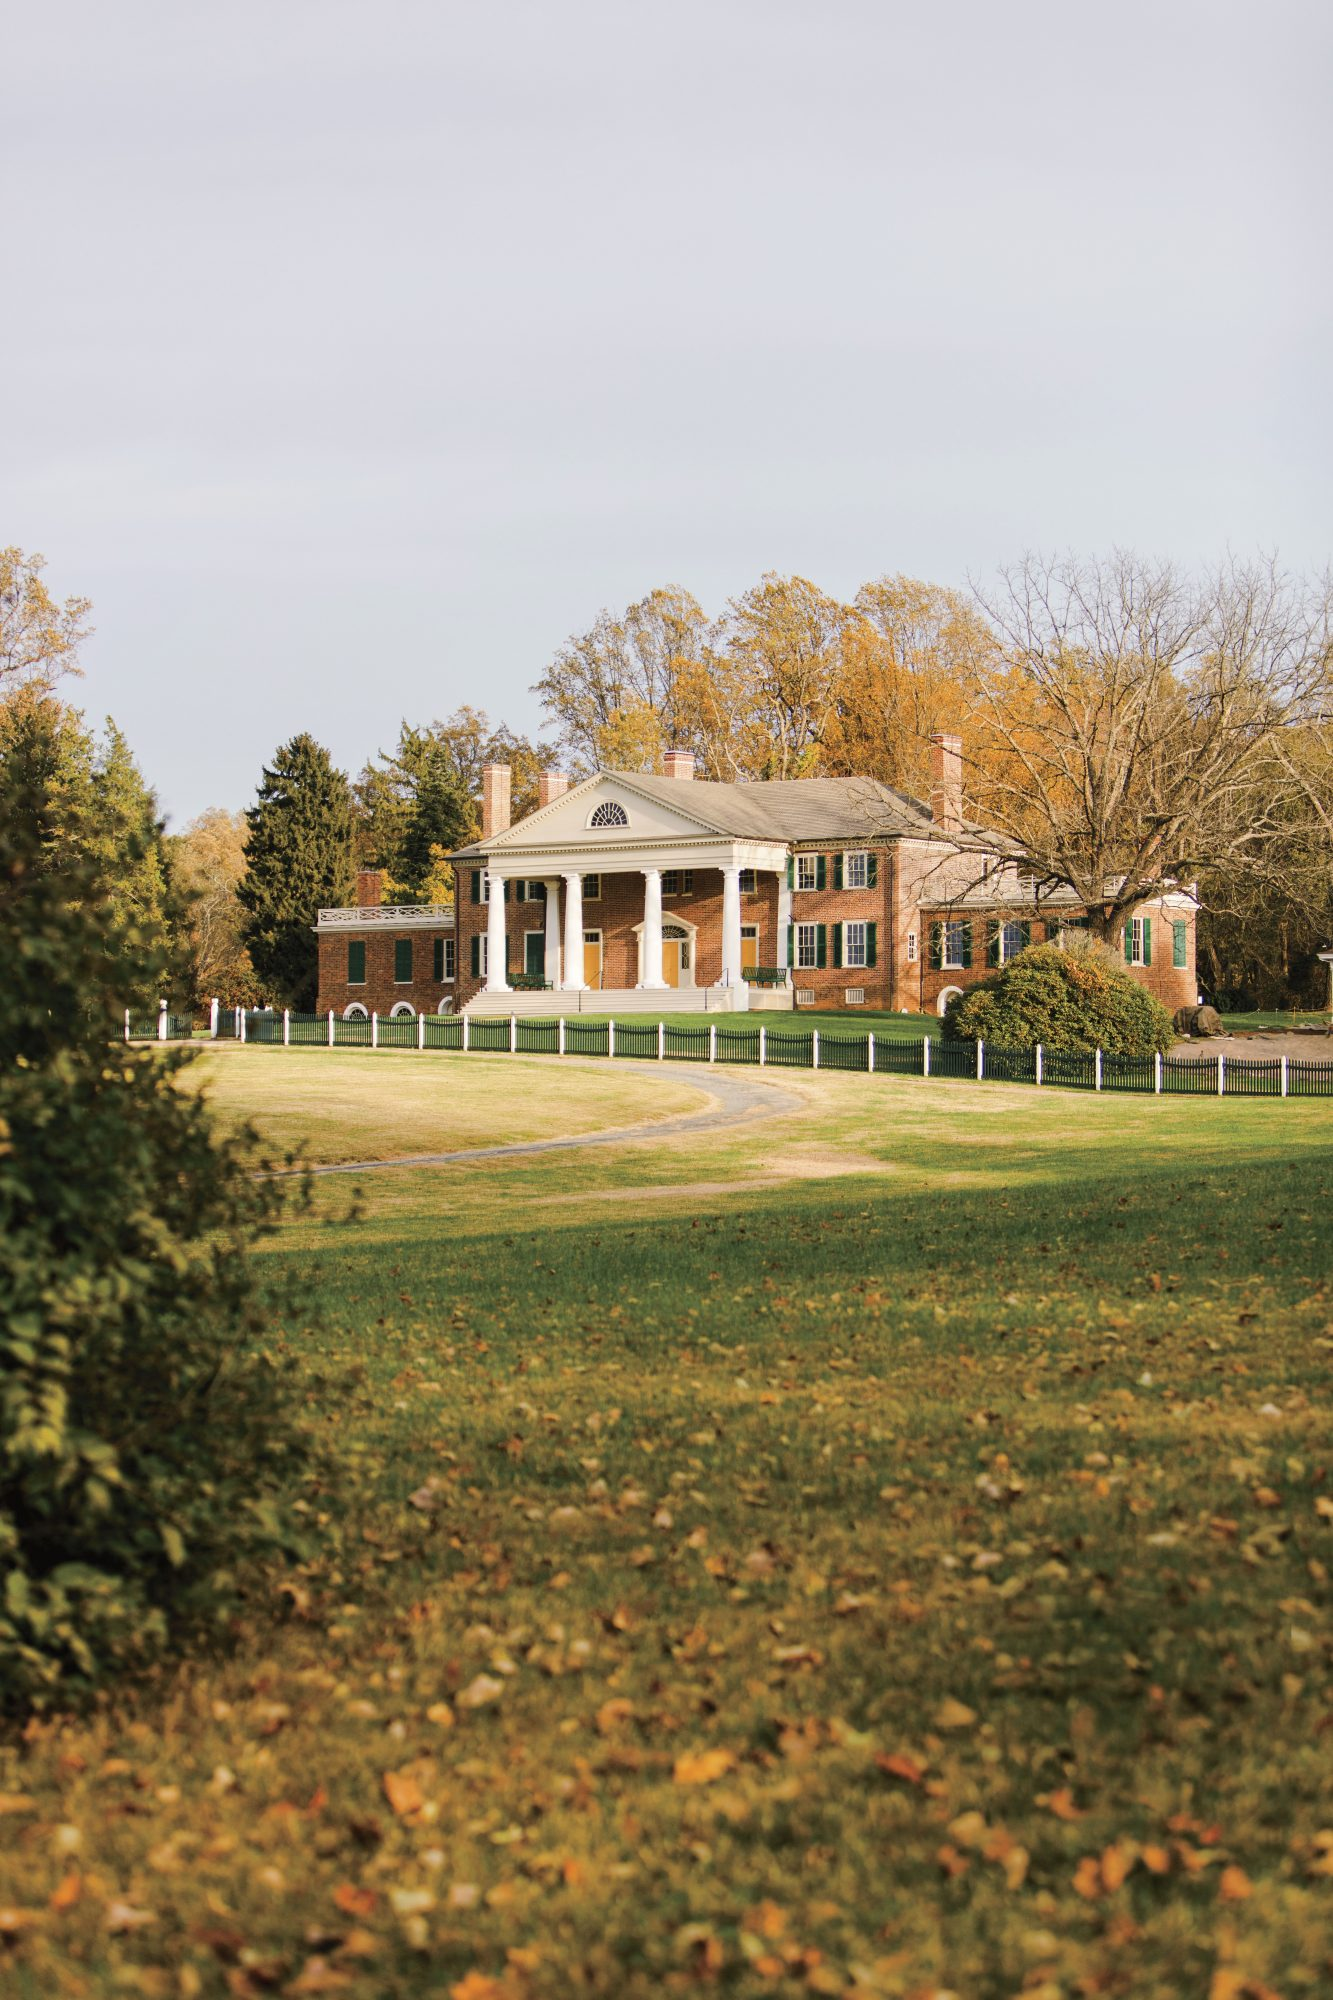 James Madison's Montpelier in Virginia